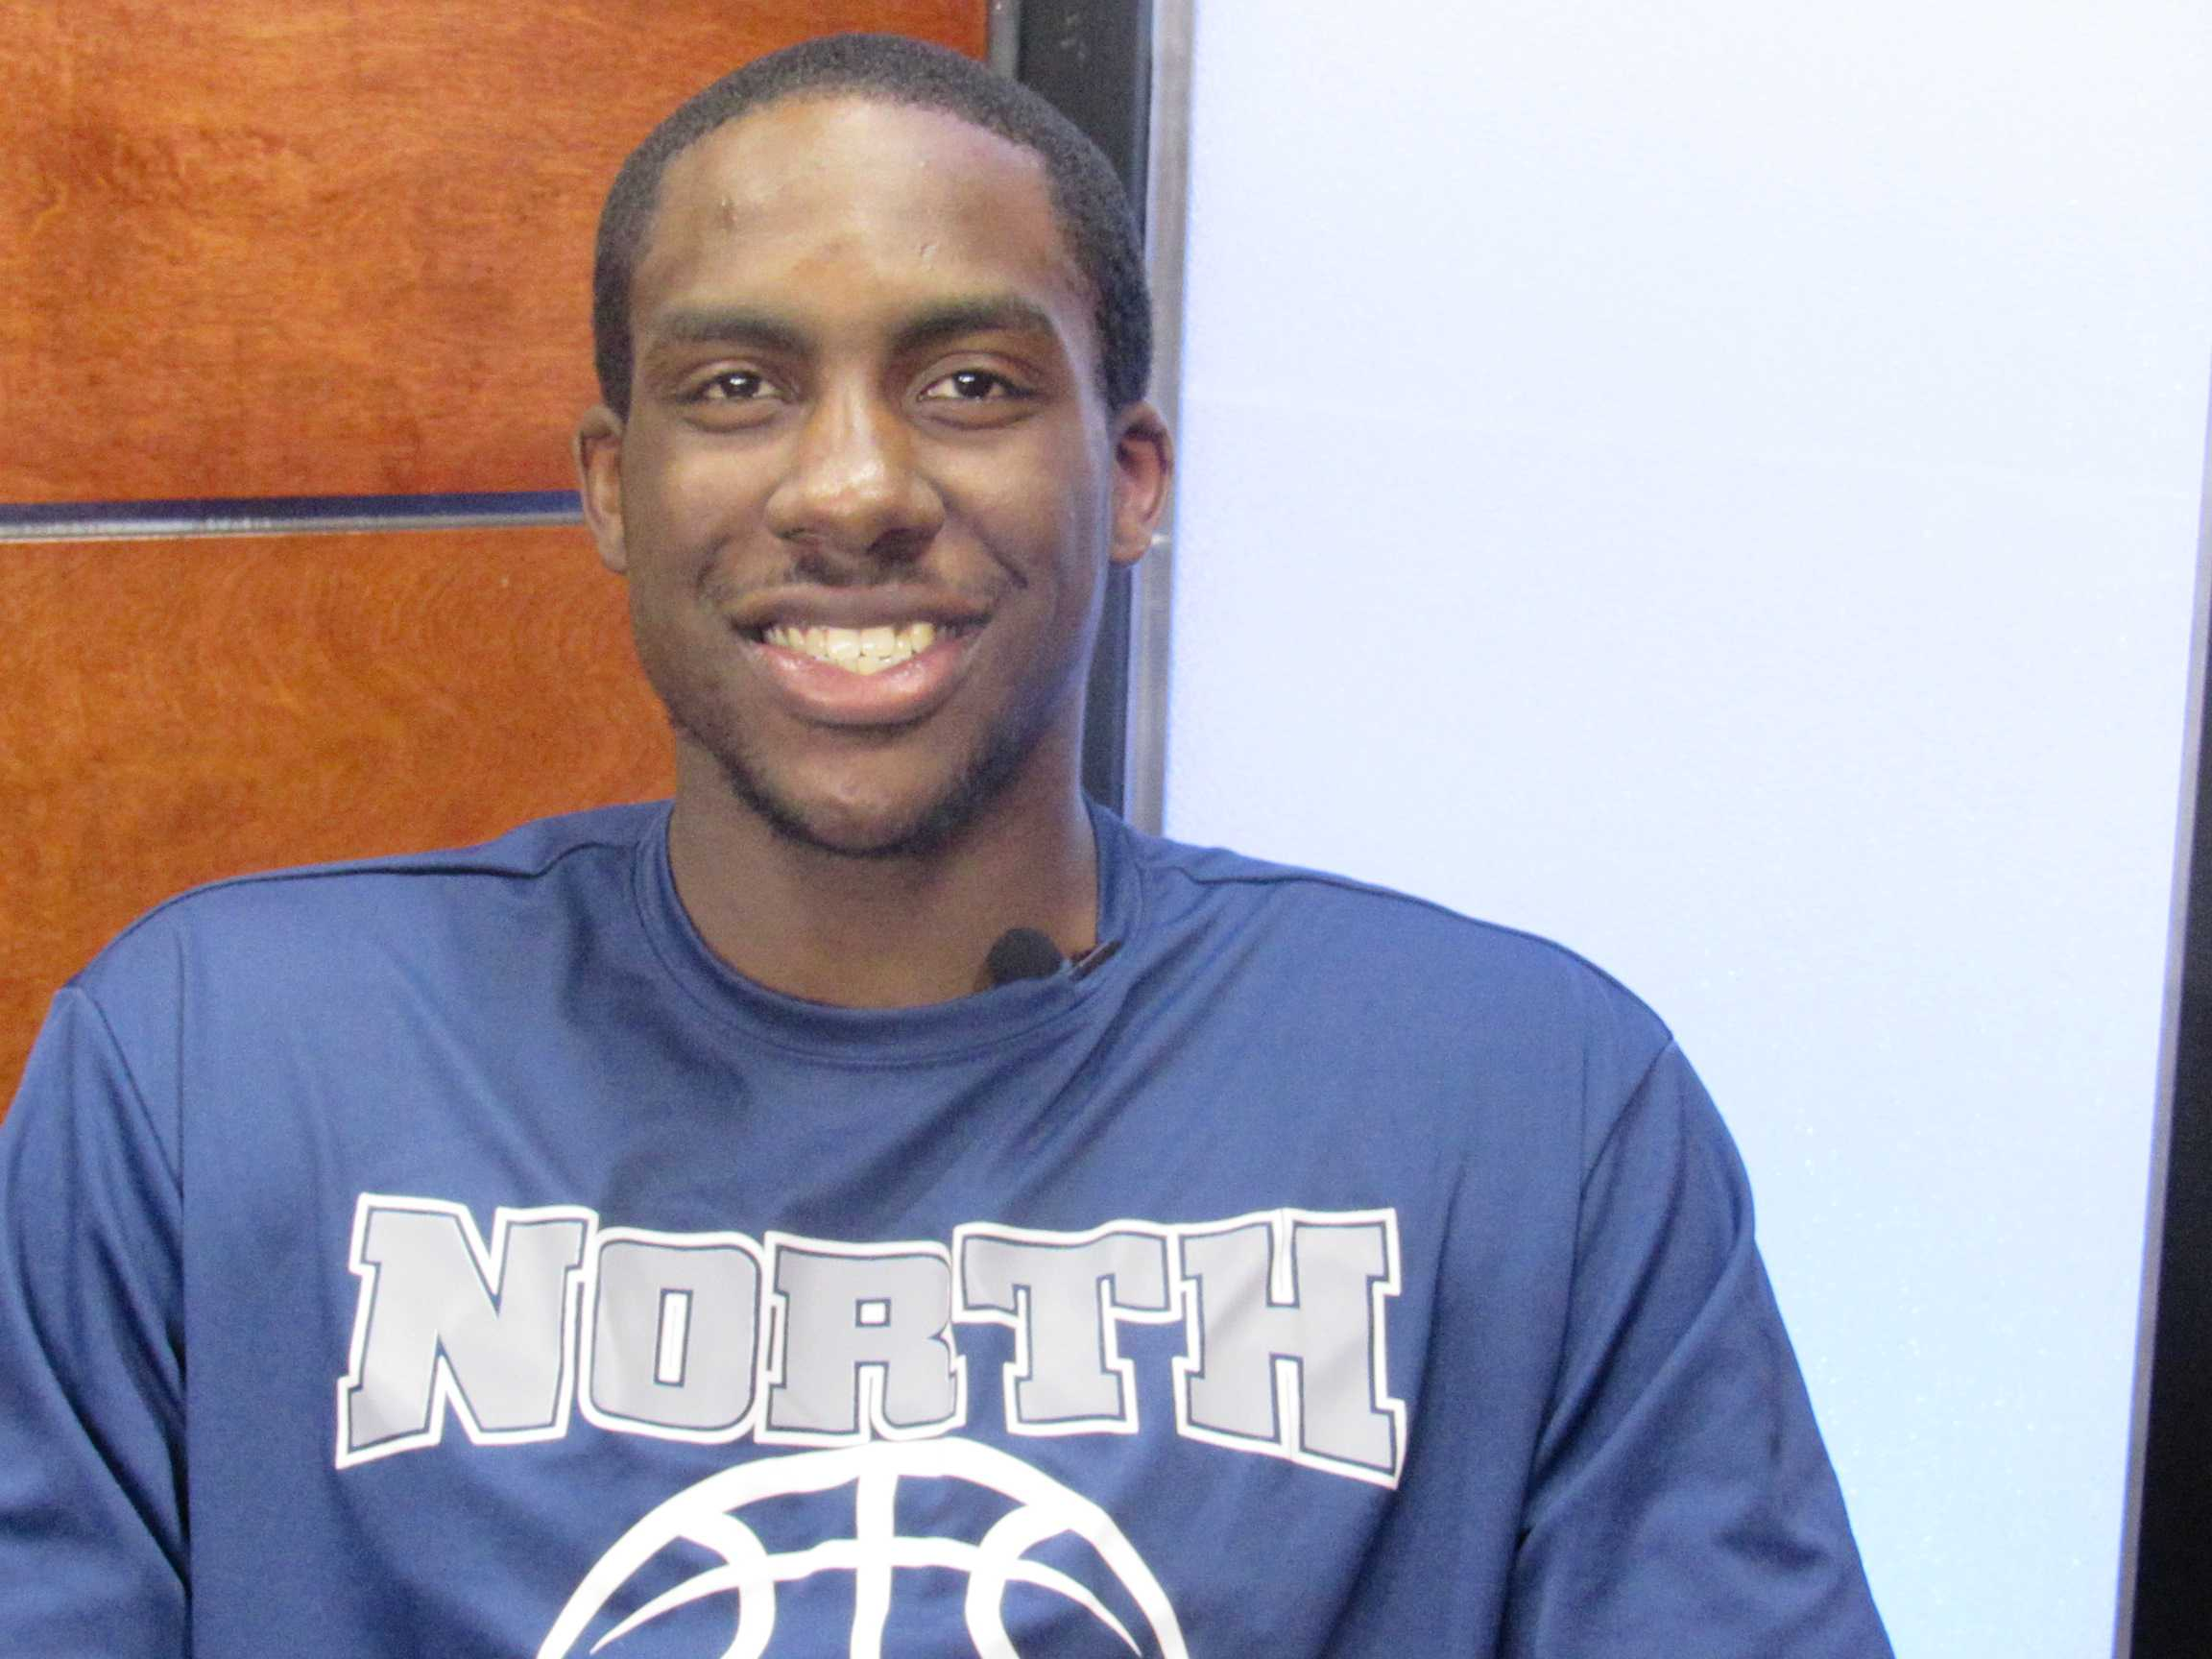 Romelo Banks: The journey back to the court